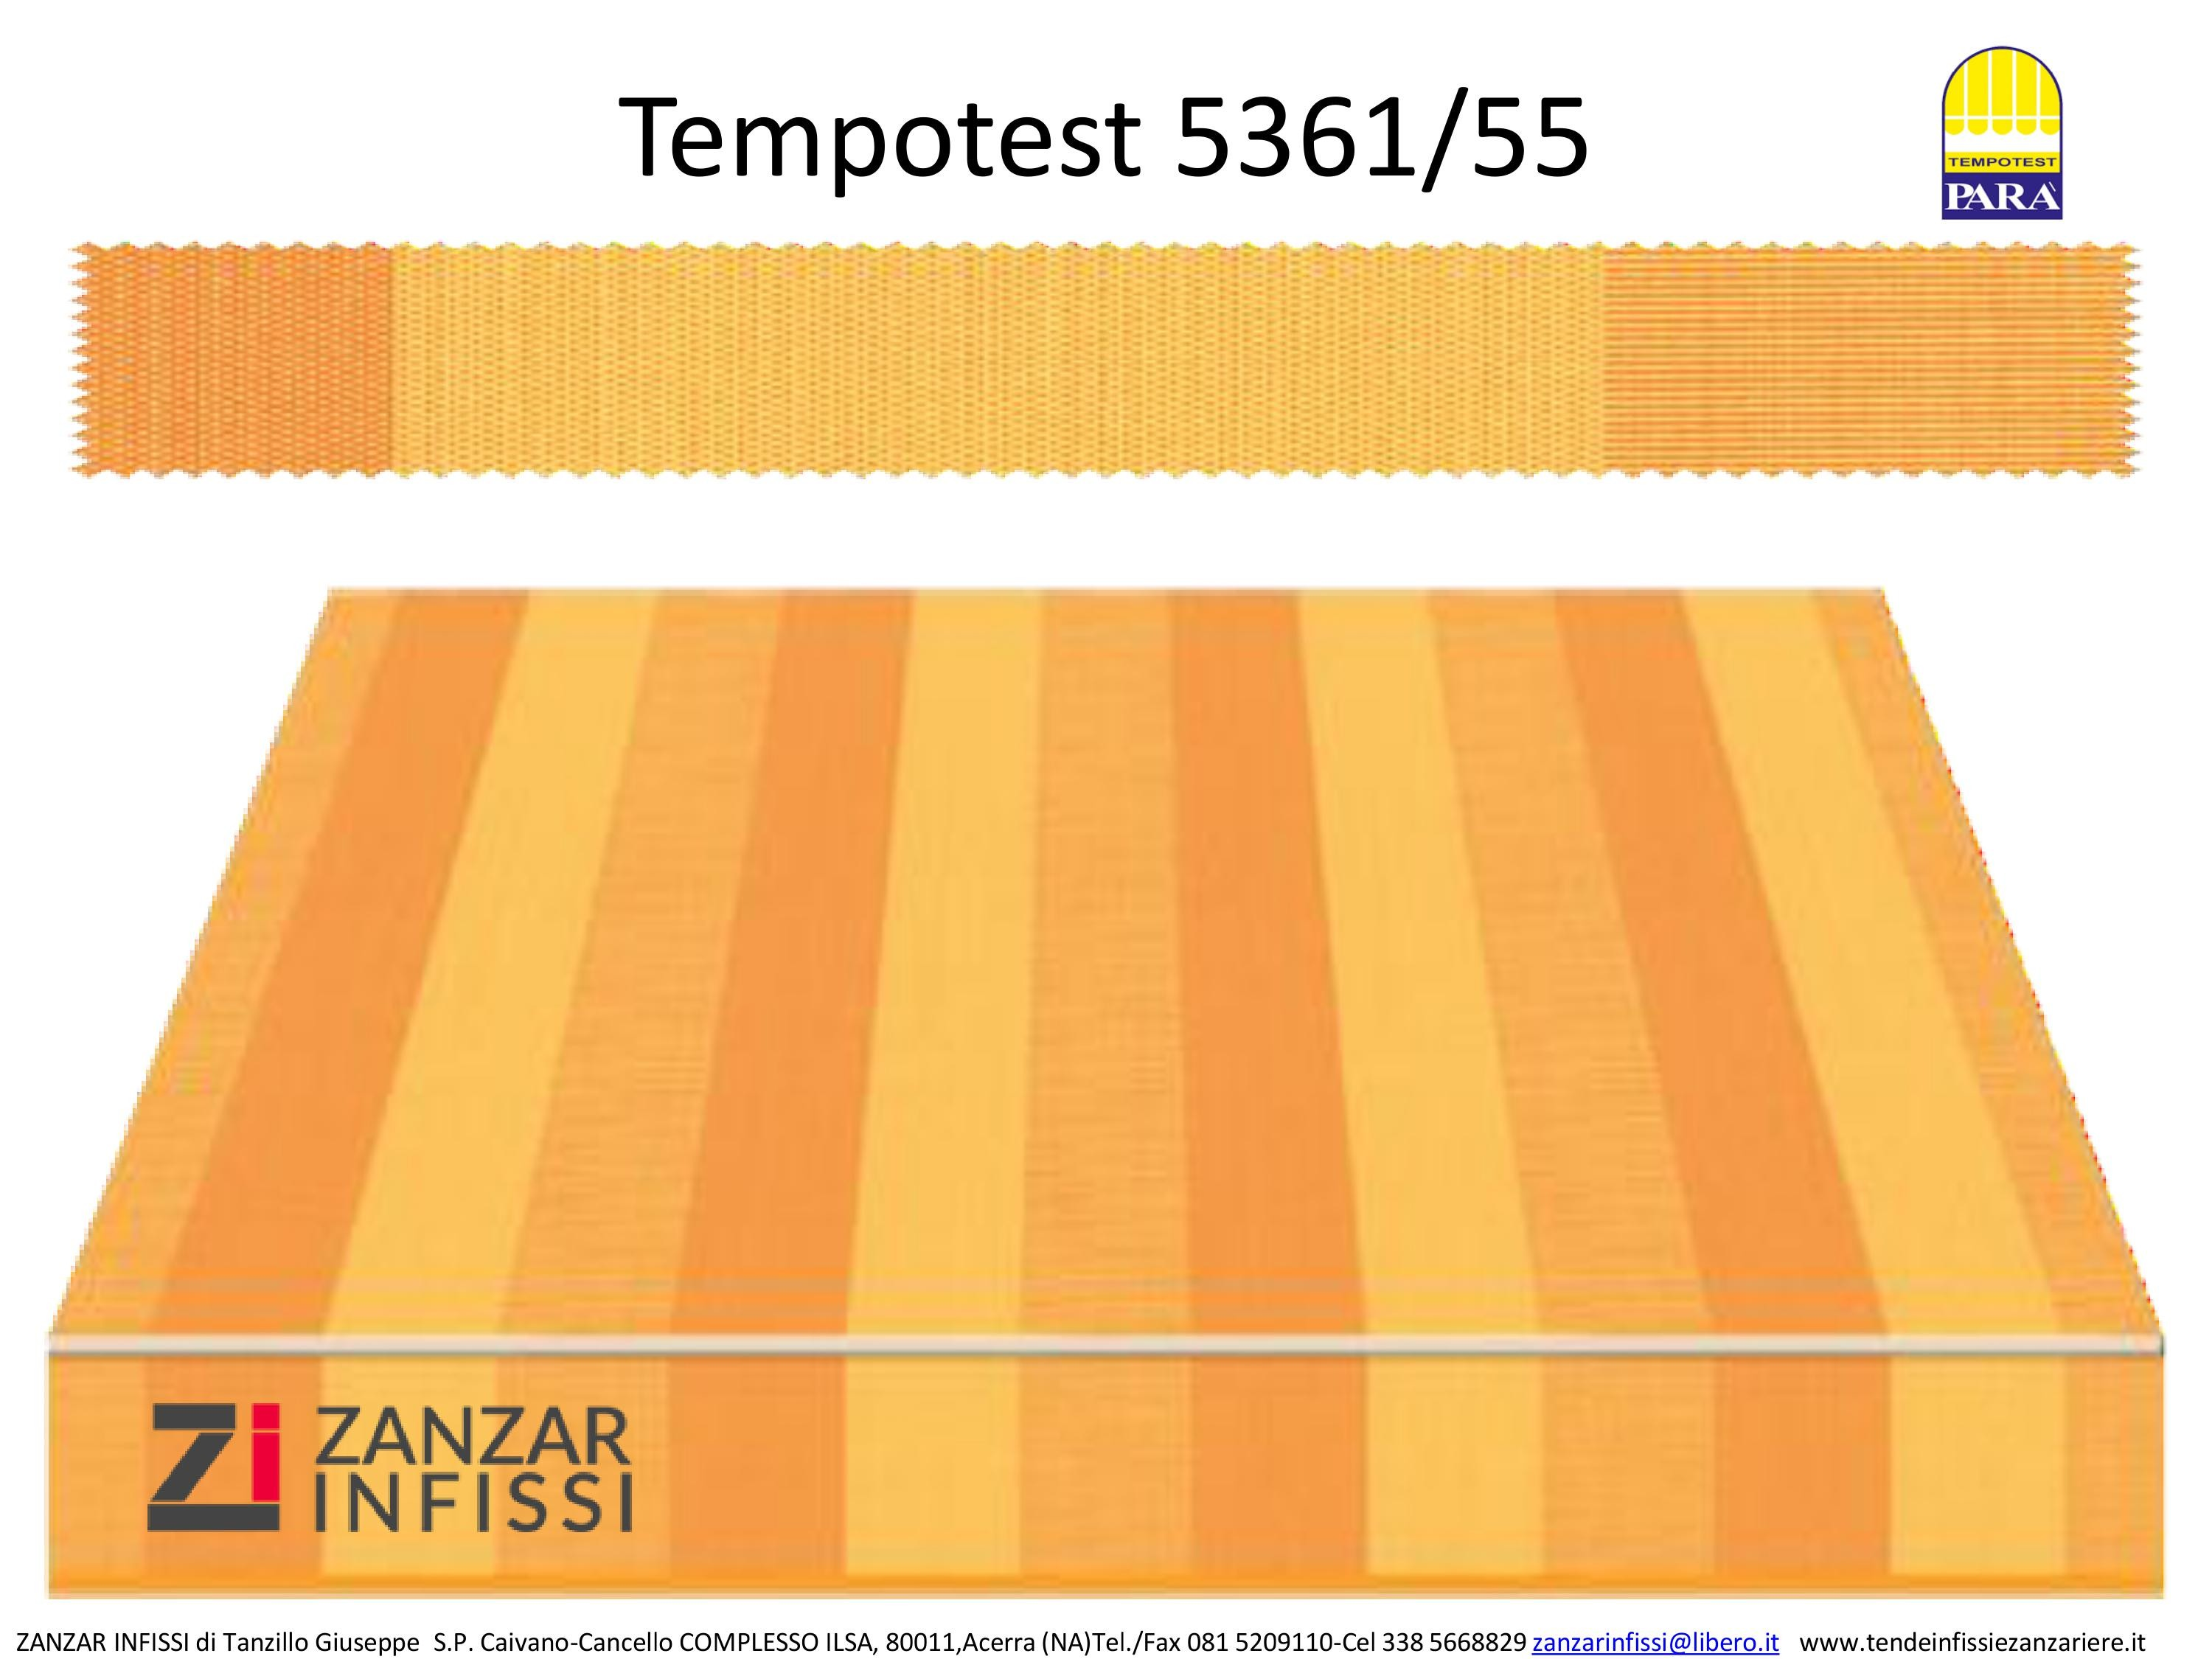 Tempotest 5361/55